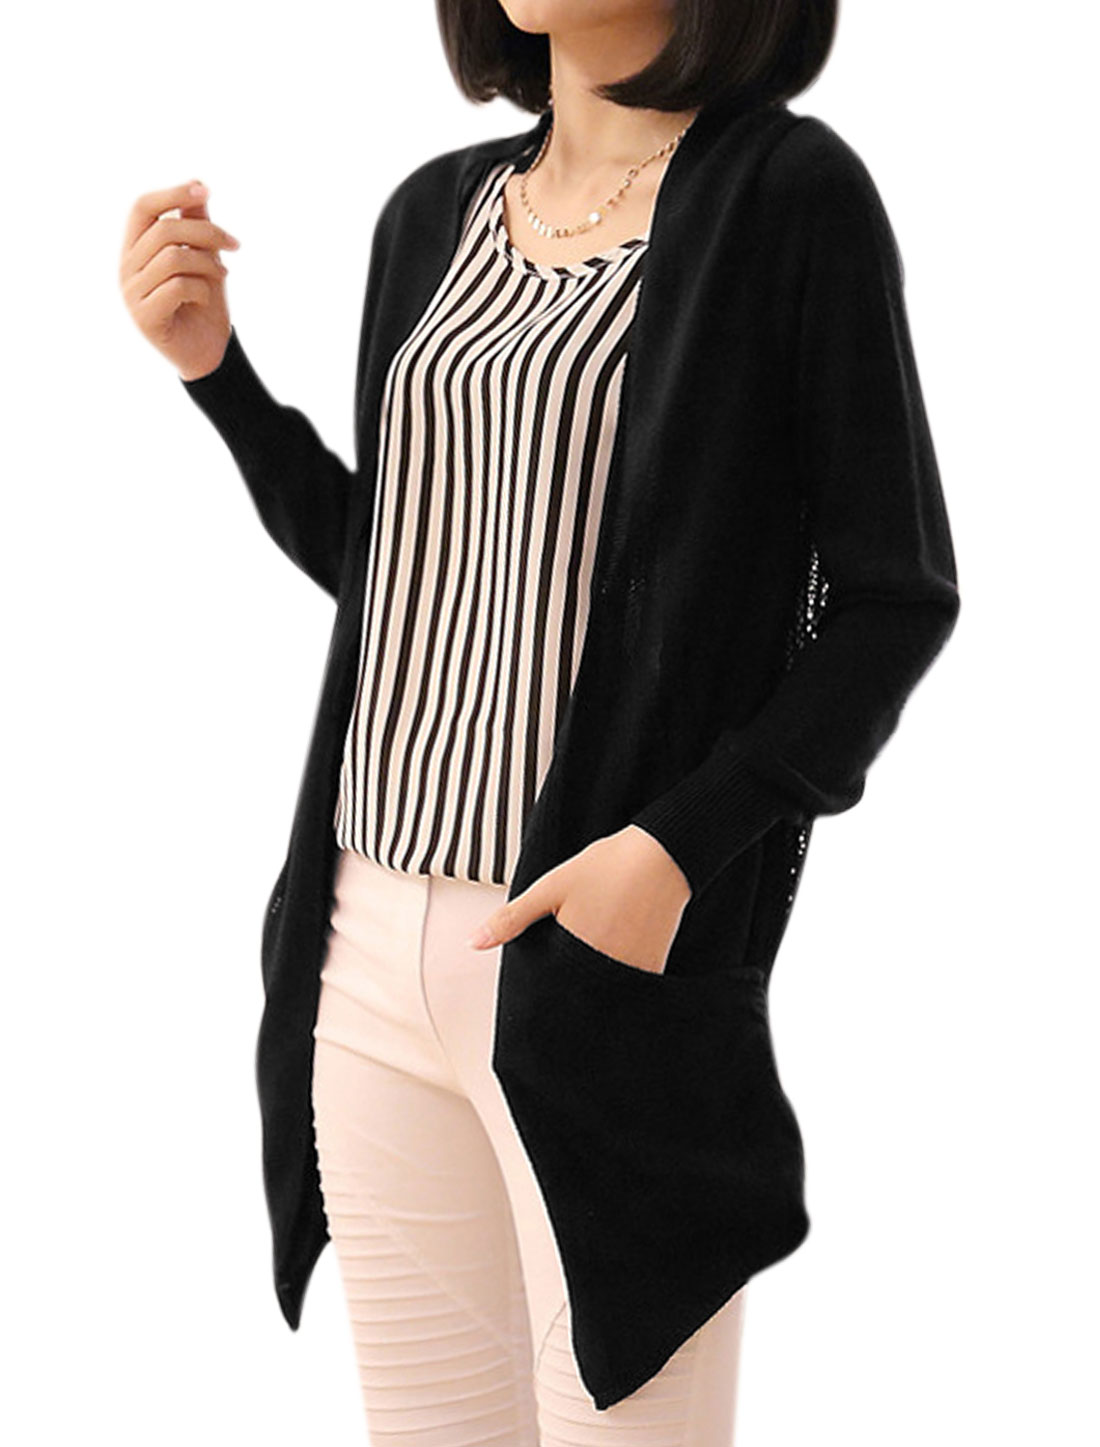 Women Front Opening Hollow Out Back Asymmetric Hem Casual Cardigan Black S